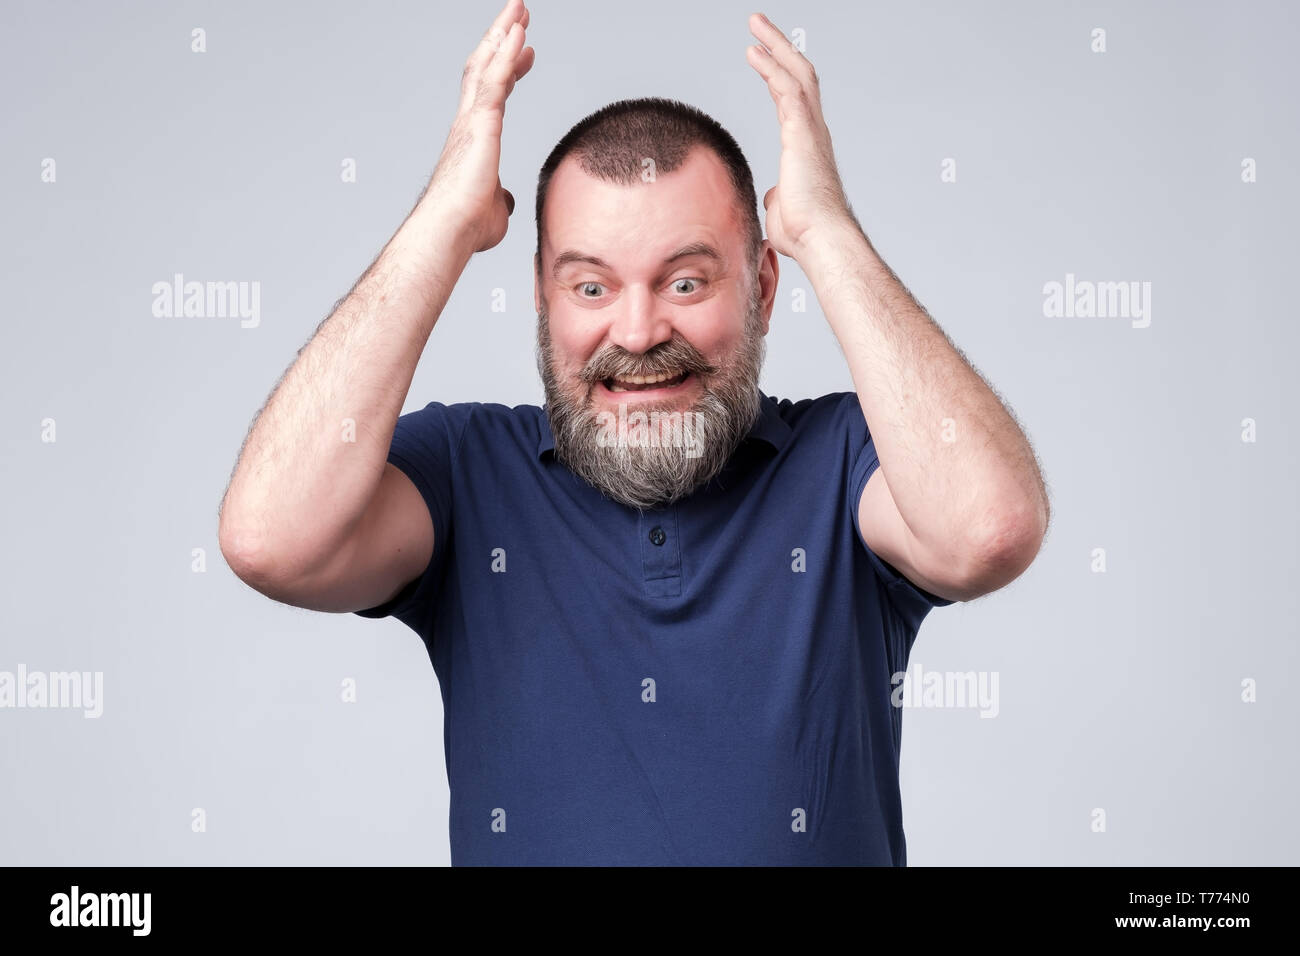 Mature man in blue t-shirt expressive gesticulating with hands, trying to prove his opinion. - Stock Image